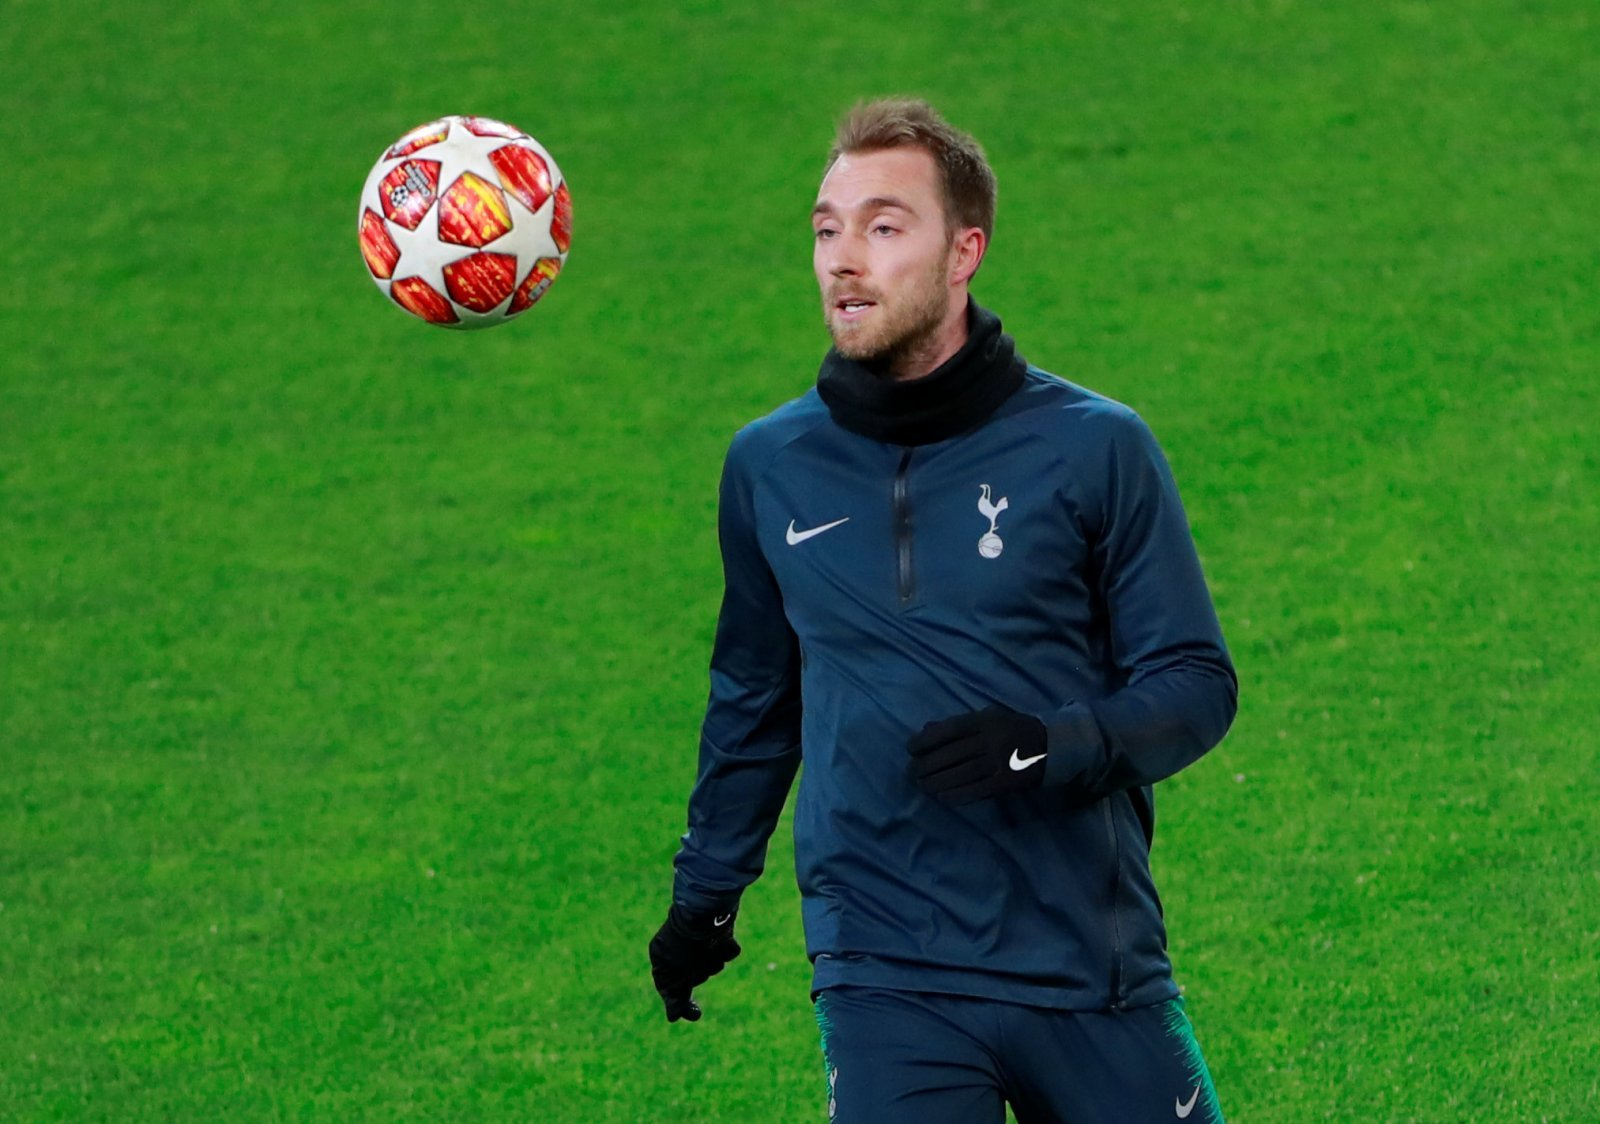 Tottenham: Daniel Levy has to give Christian Eriksen his marching orders if he's not keen